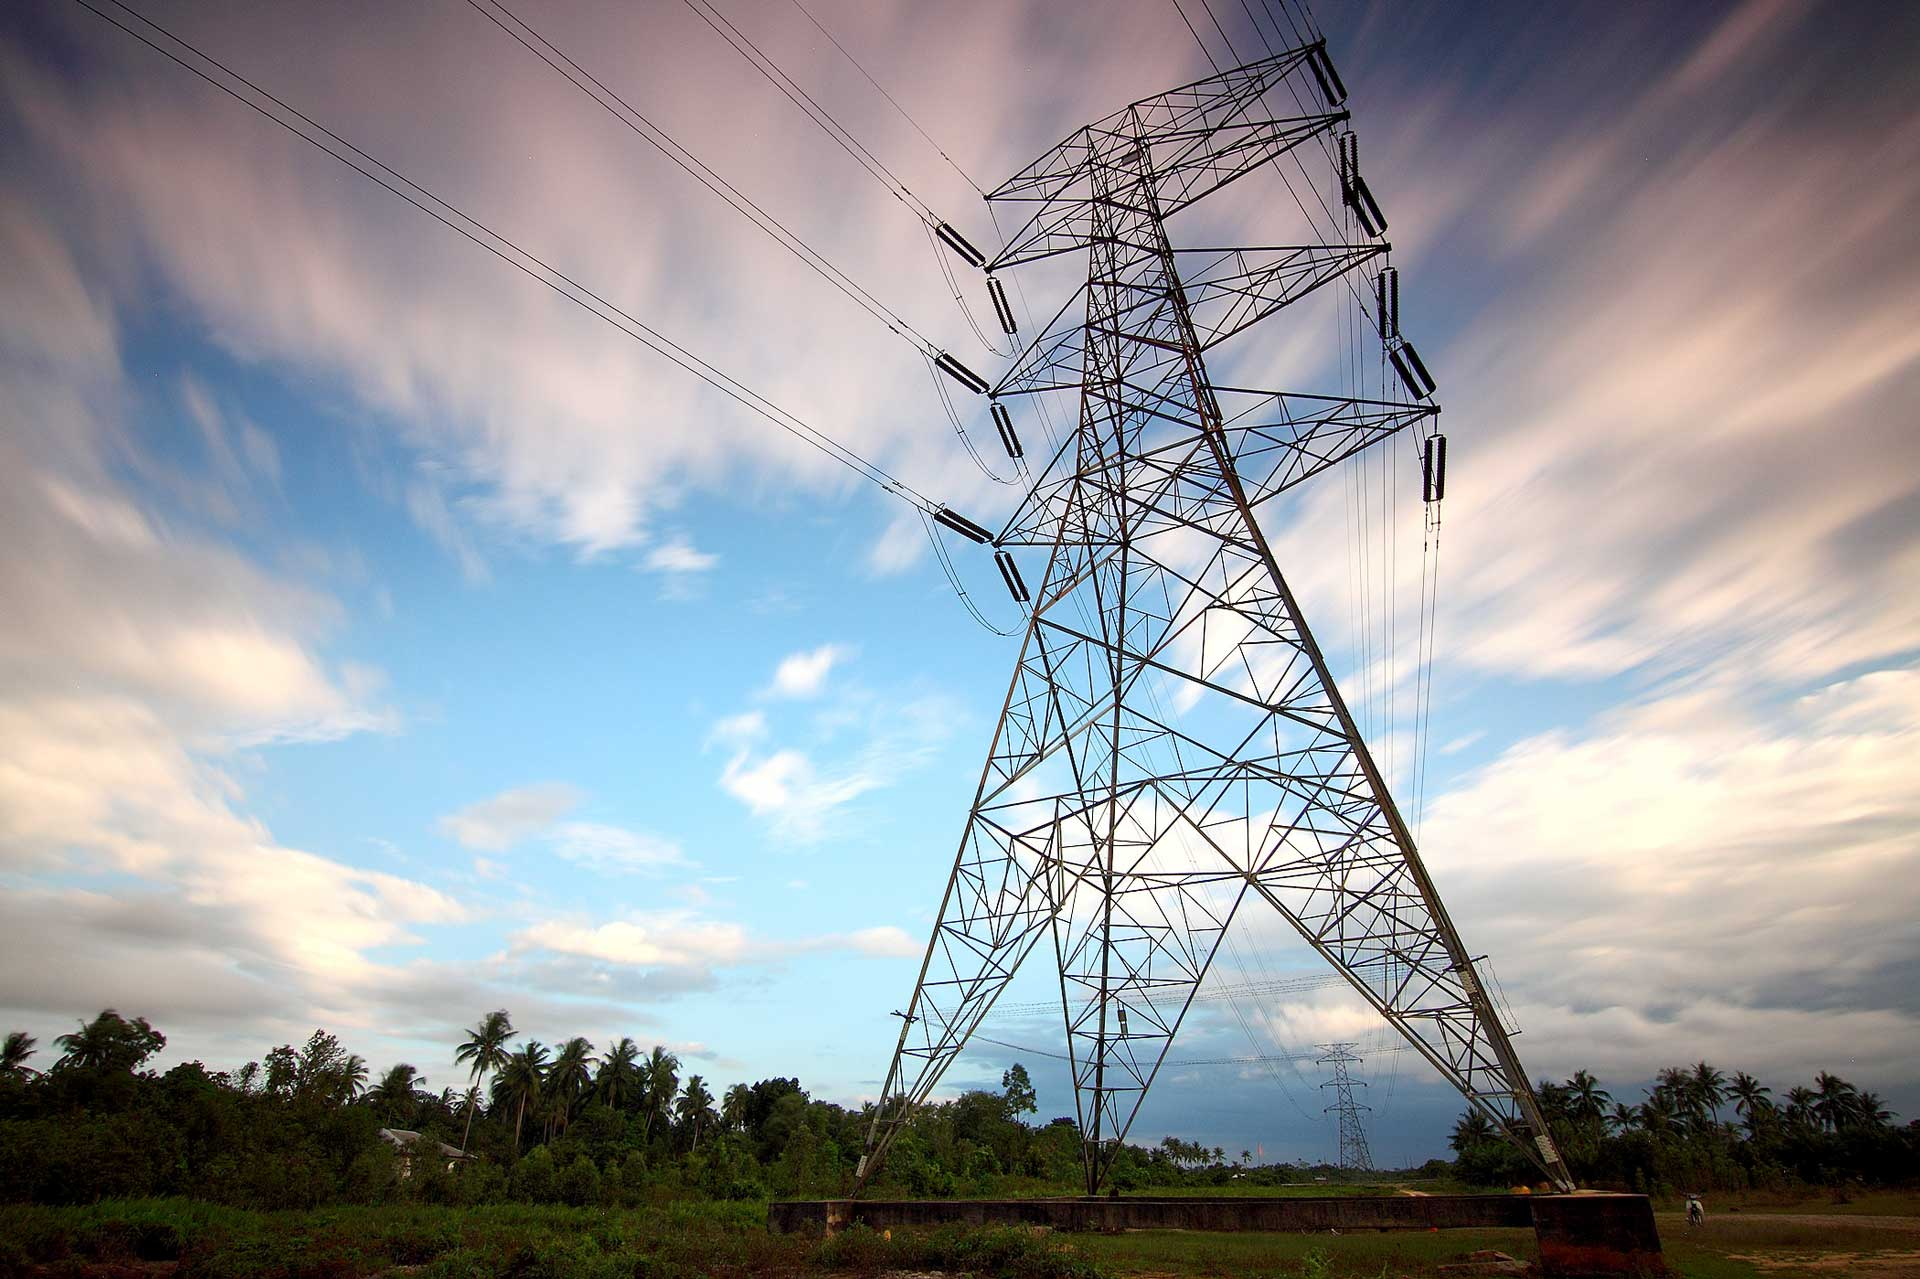 Electric Power Lines - Energy Procurement